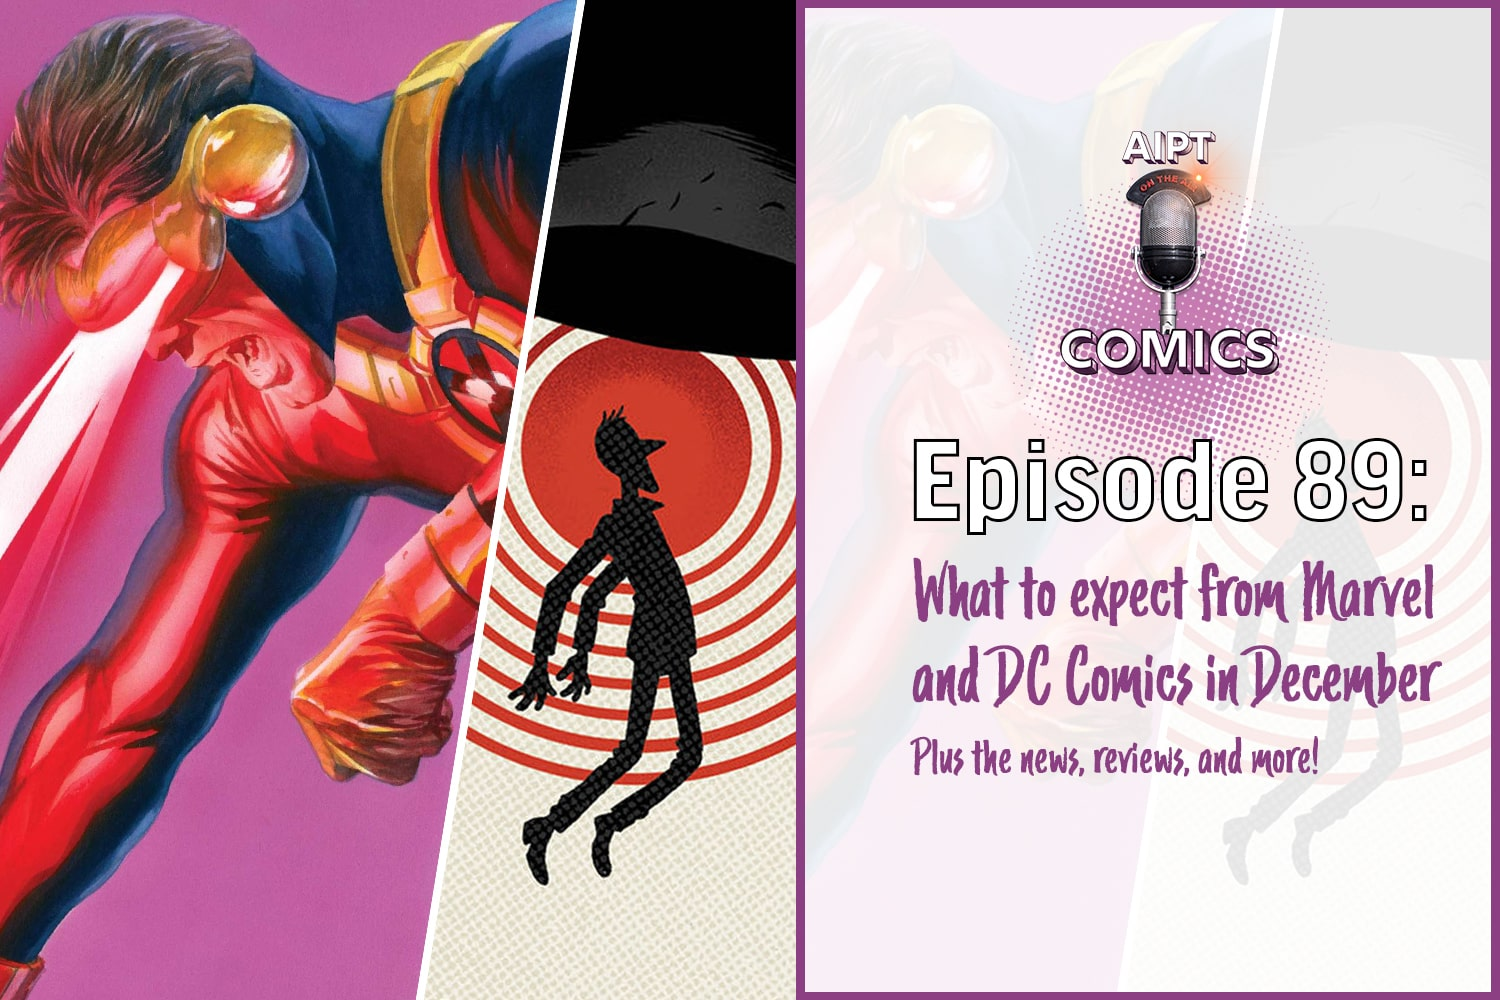 AIPT Comics Podcast Episode 89: What to expect from Marvel Comics and DC Comics in December